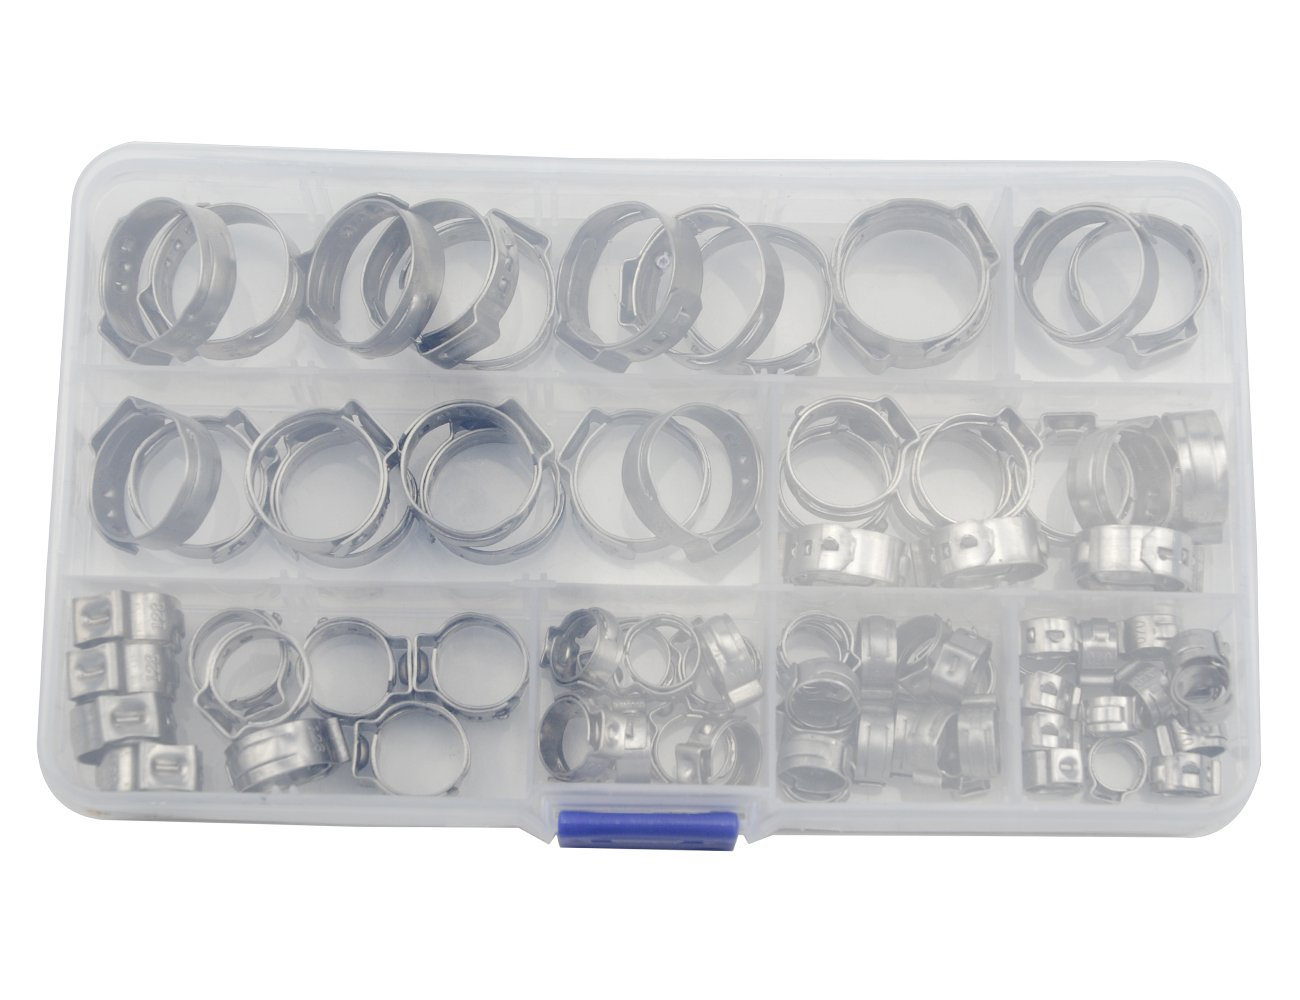 WGCD 80 PCS Stainless Steel Single Ear Hose Clamps with Ear Clamp Pincer Kit, 7-21mm